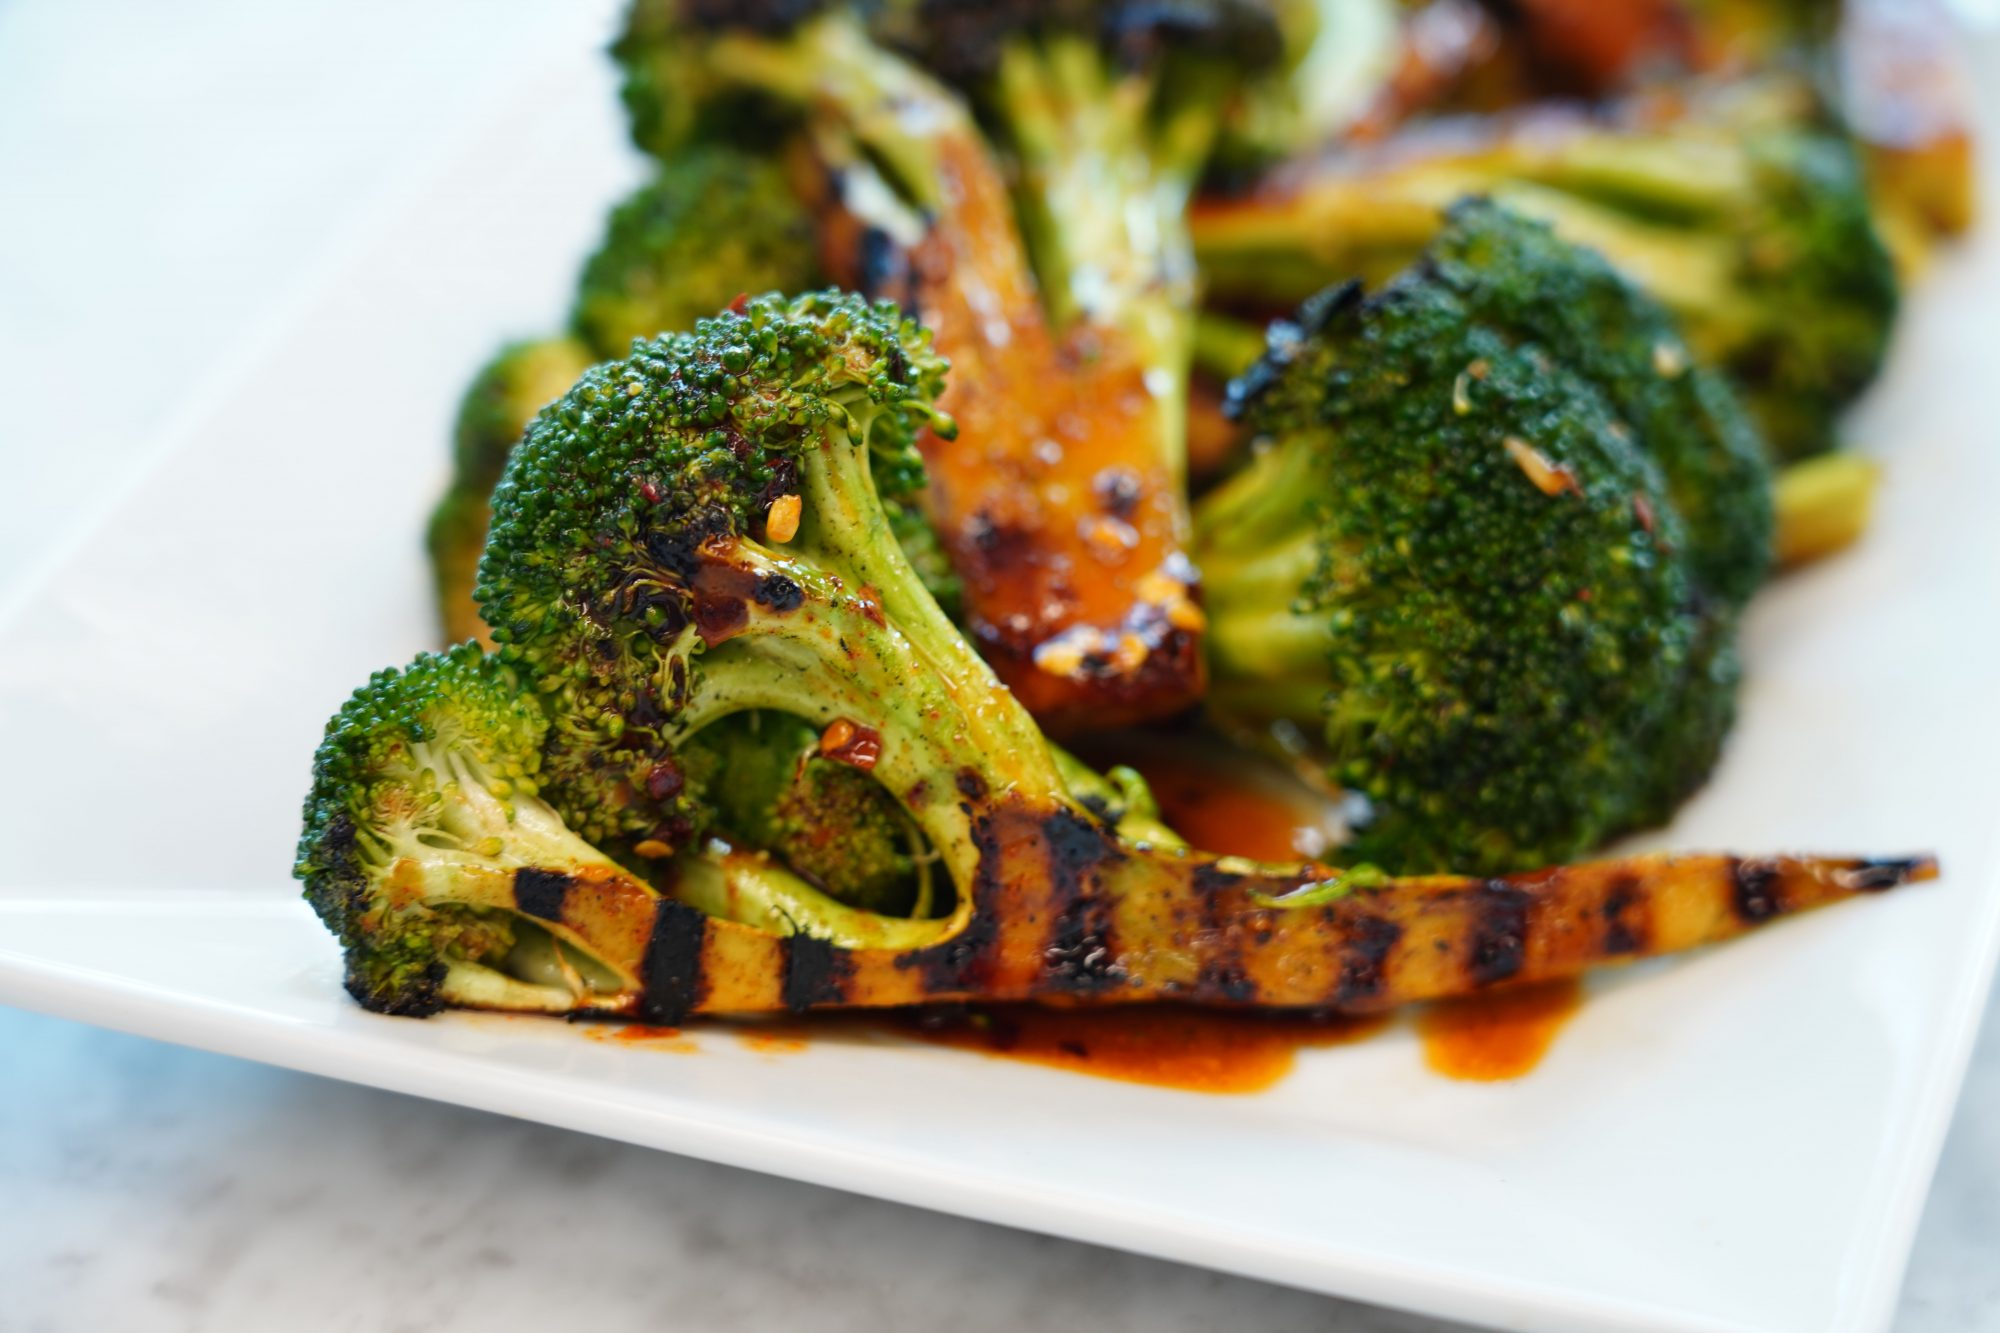 plate of Spicy Grilled Broccoli recipe with gochujang Korean hot pepper paste sauce